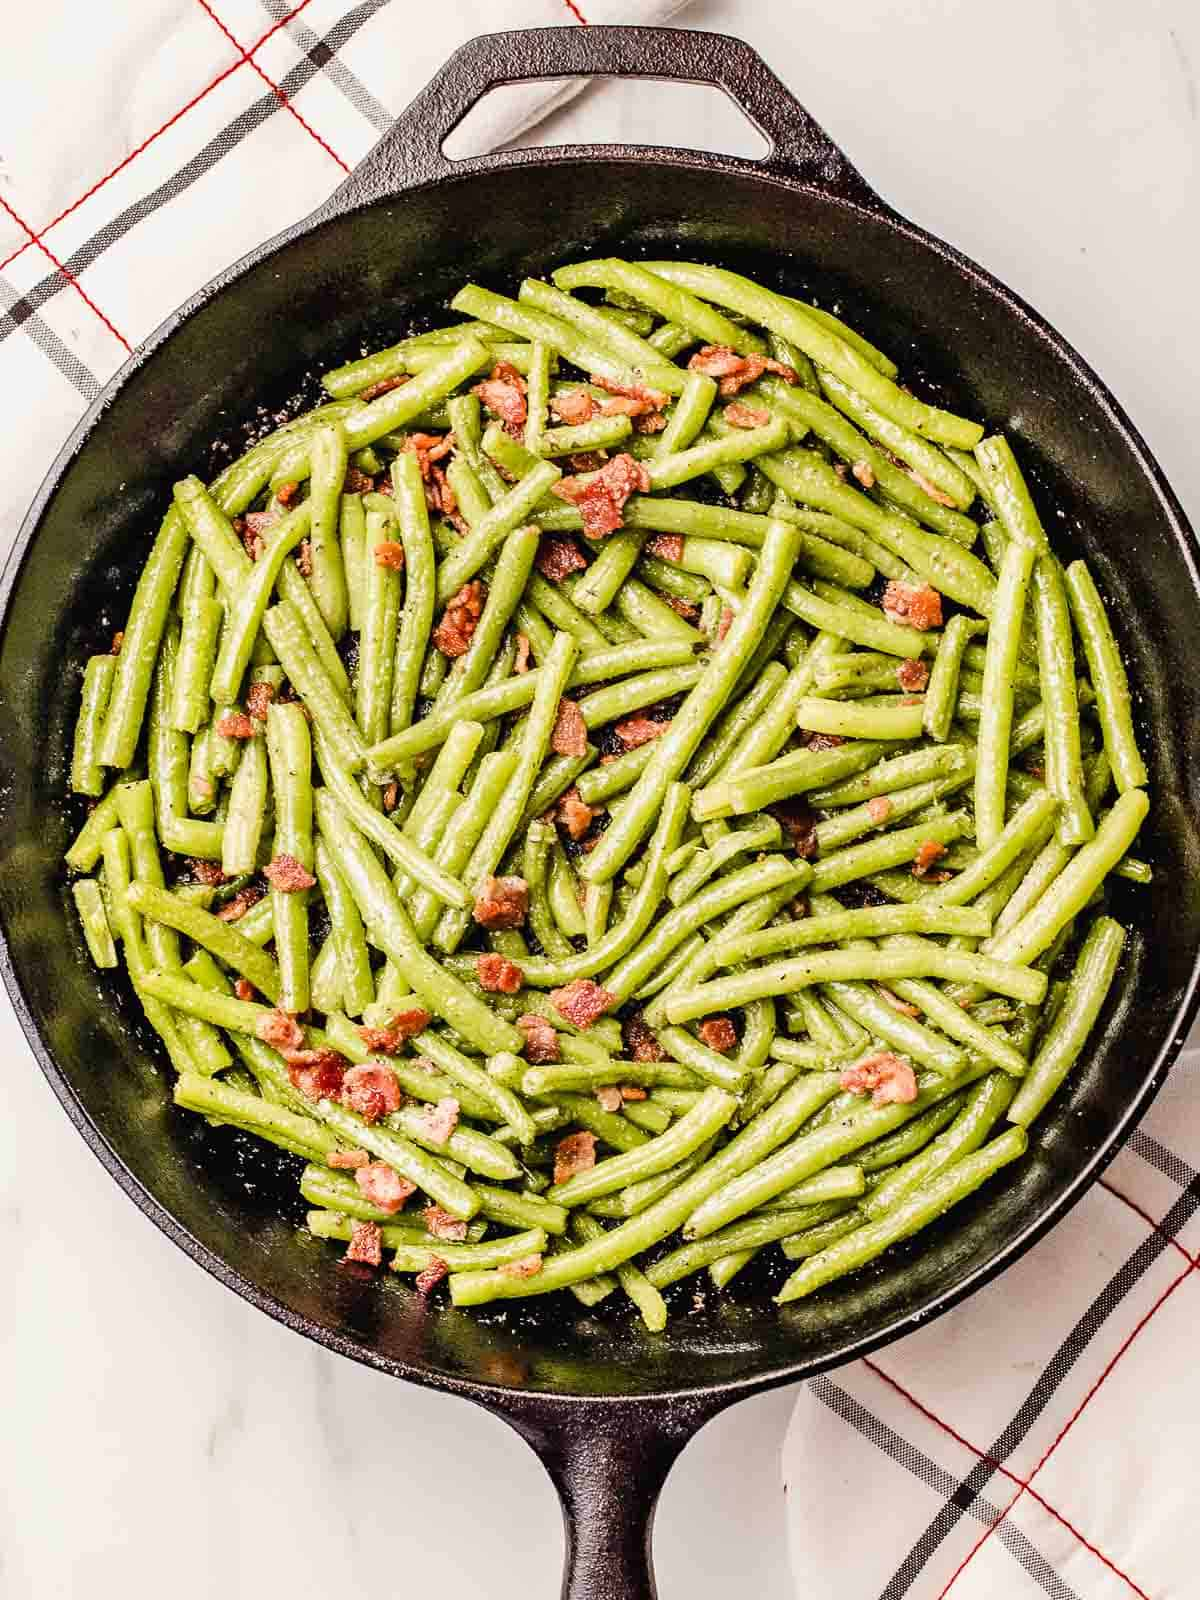 Green beans with bacon in a cast iron skillet.